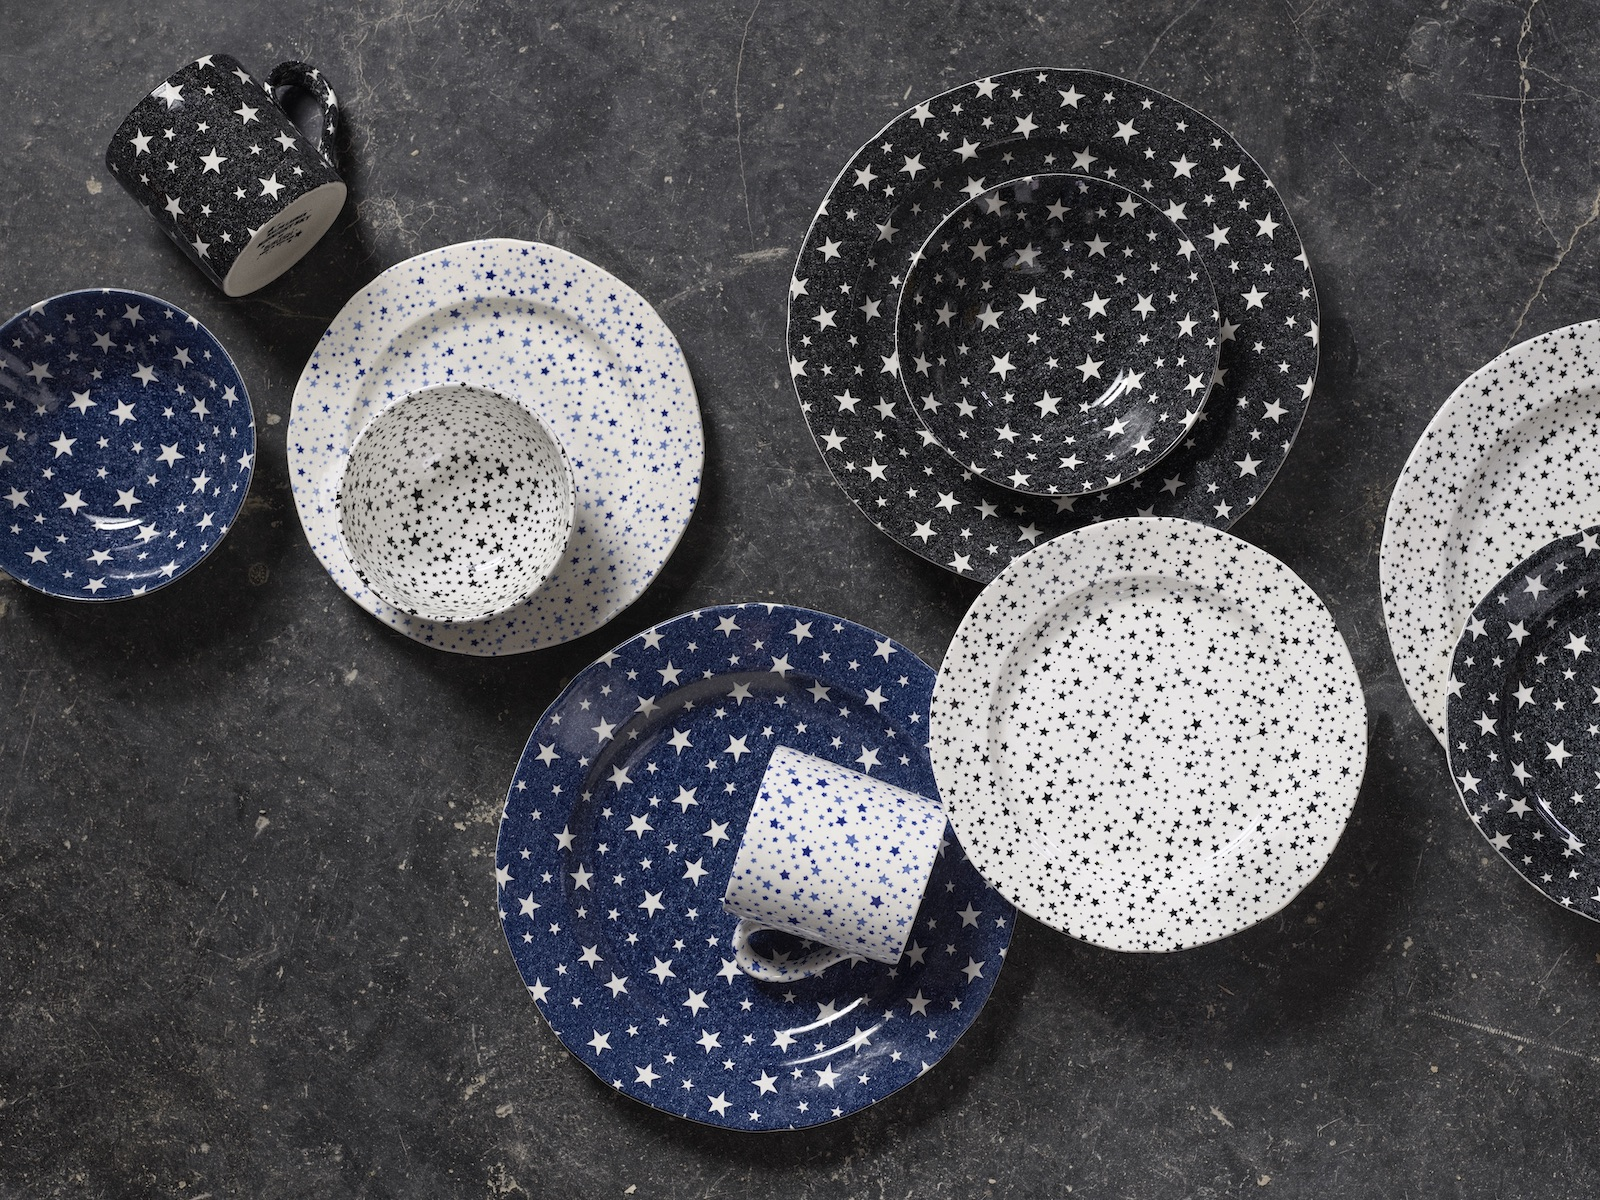 Burleigh Pottery & Ralph Lauren | Spring Collection - Humphrey Munson Blog